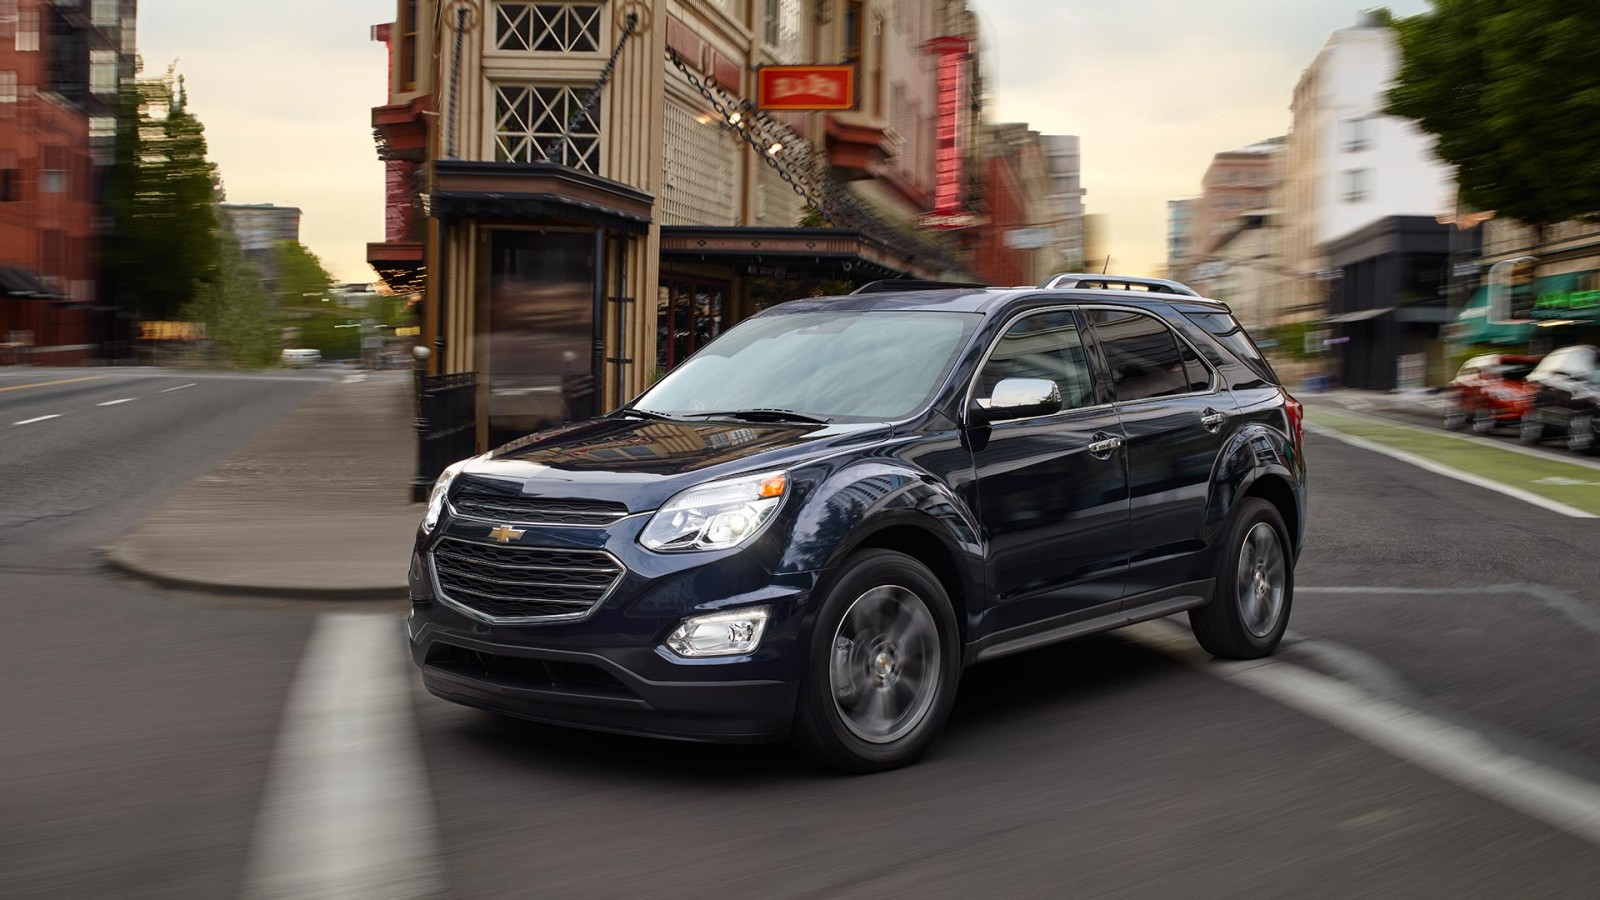 2017 Chevrolet Equinox vs 2017 Ford Escape in Chantilly, VA